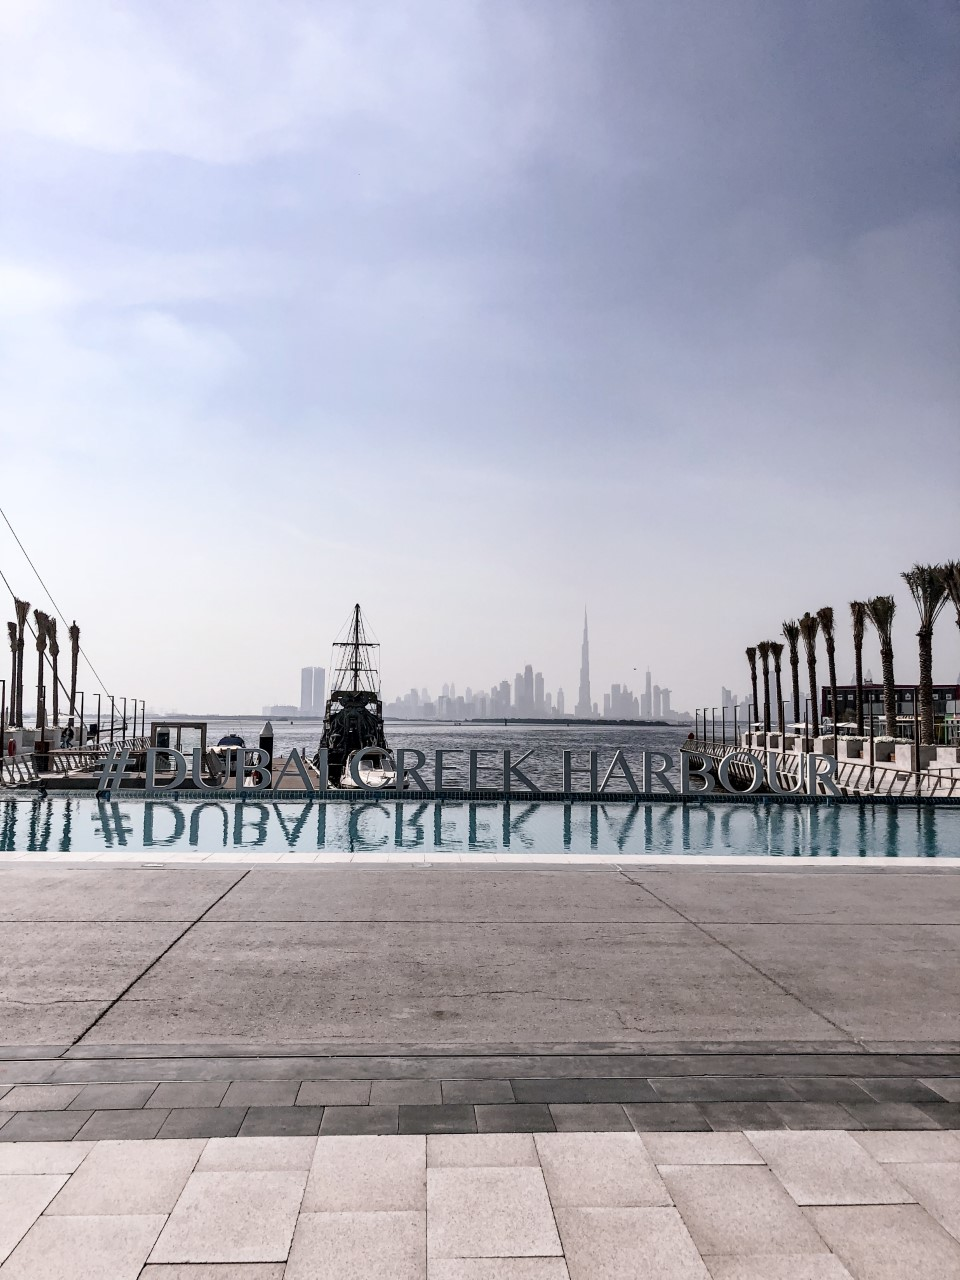 The Most Instagrammable Places in Dubai - Dubai Creek Harbour